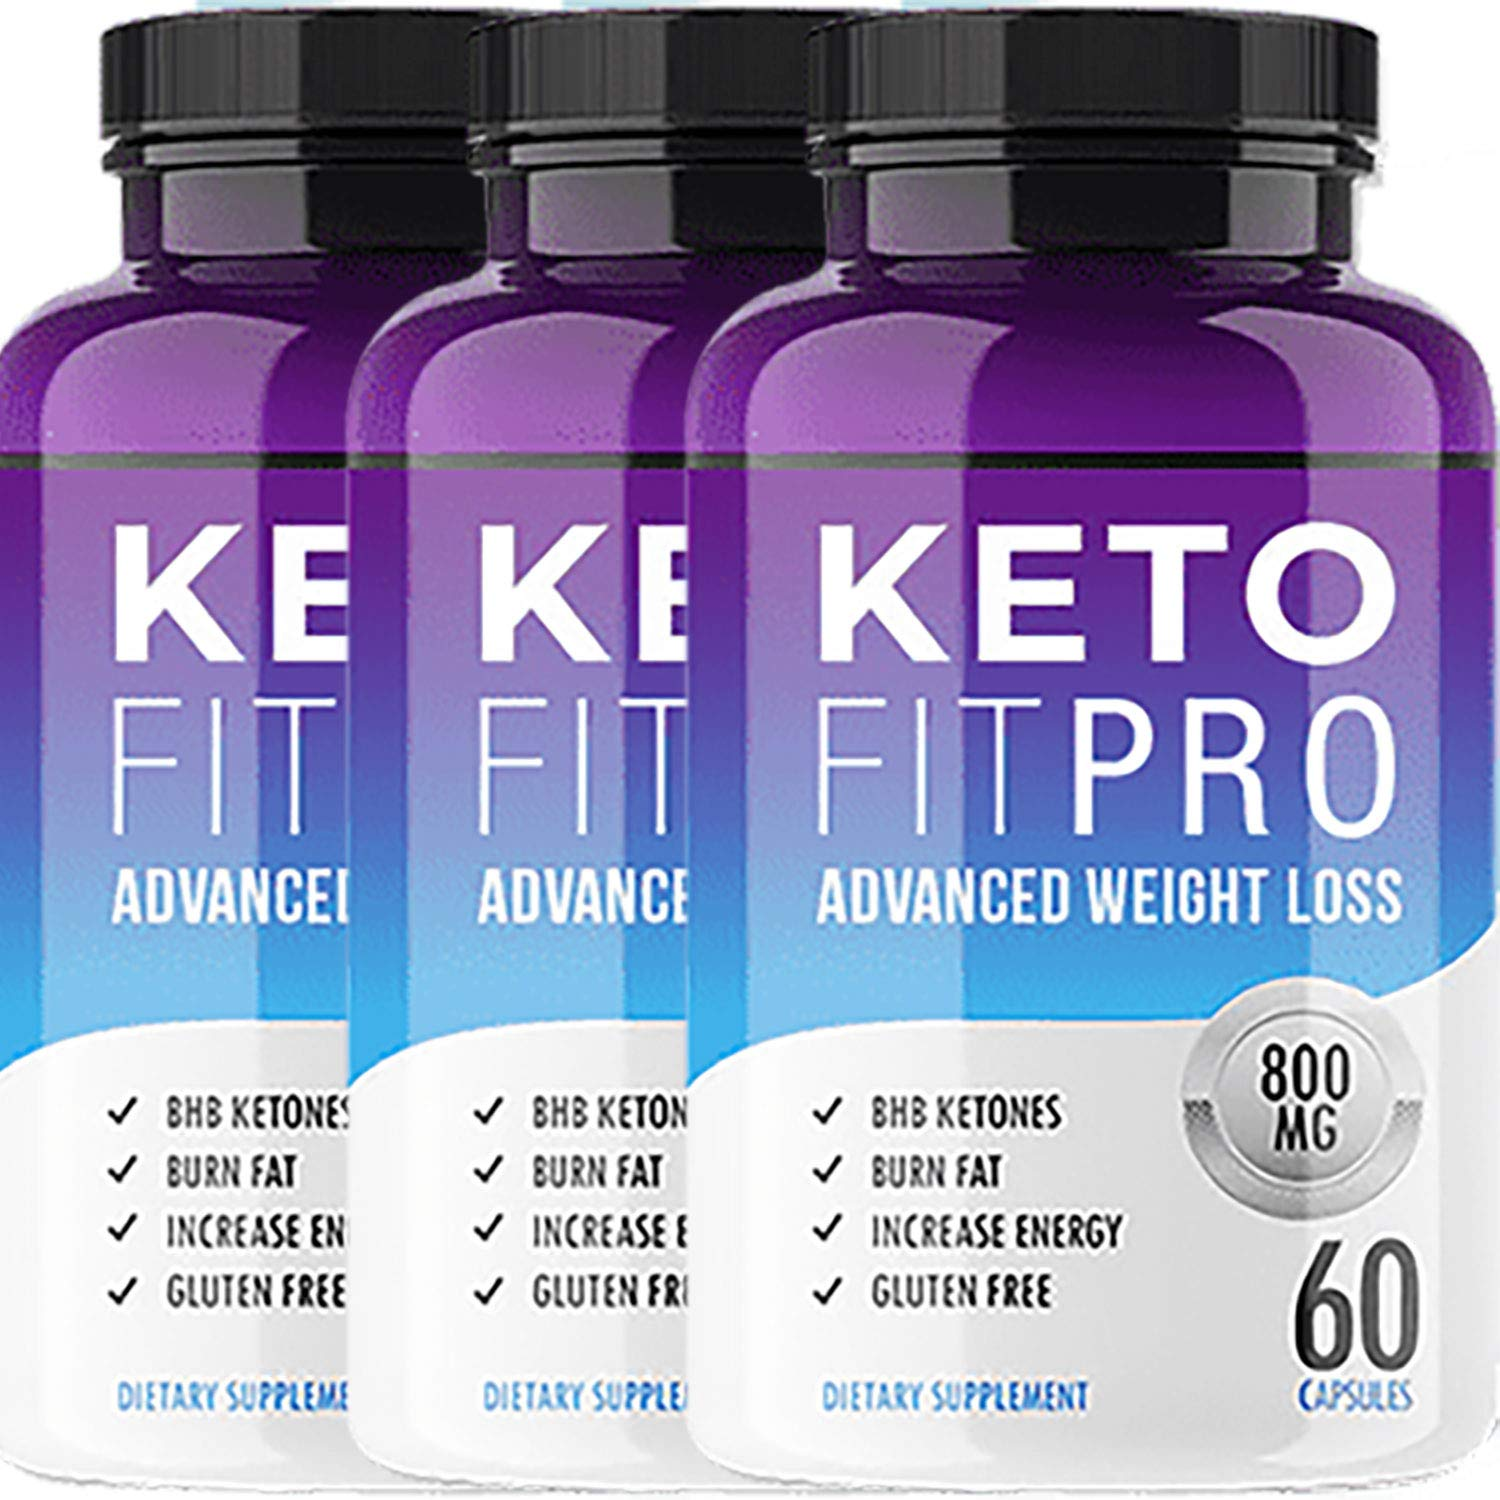 Keto Fit Pro – Advanced Ketosis Weight Loss – Premium Keto Diet Pills – Burn Fat for Energy not Carbs 3 Month Supply